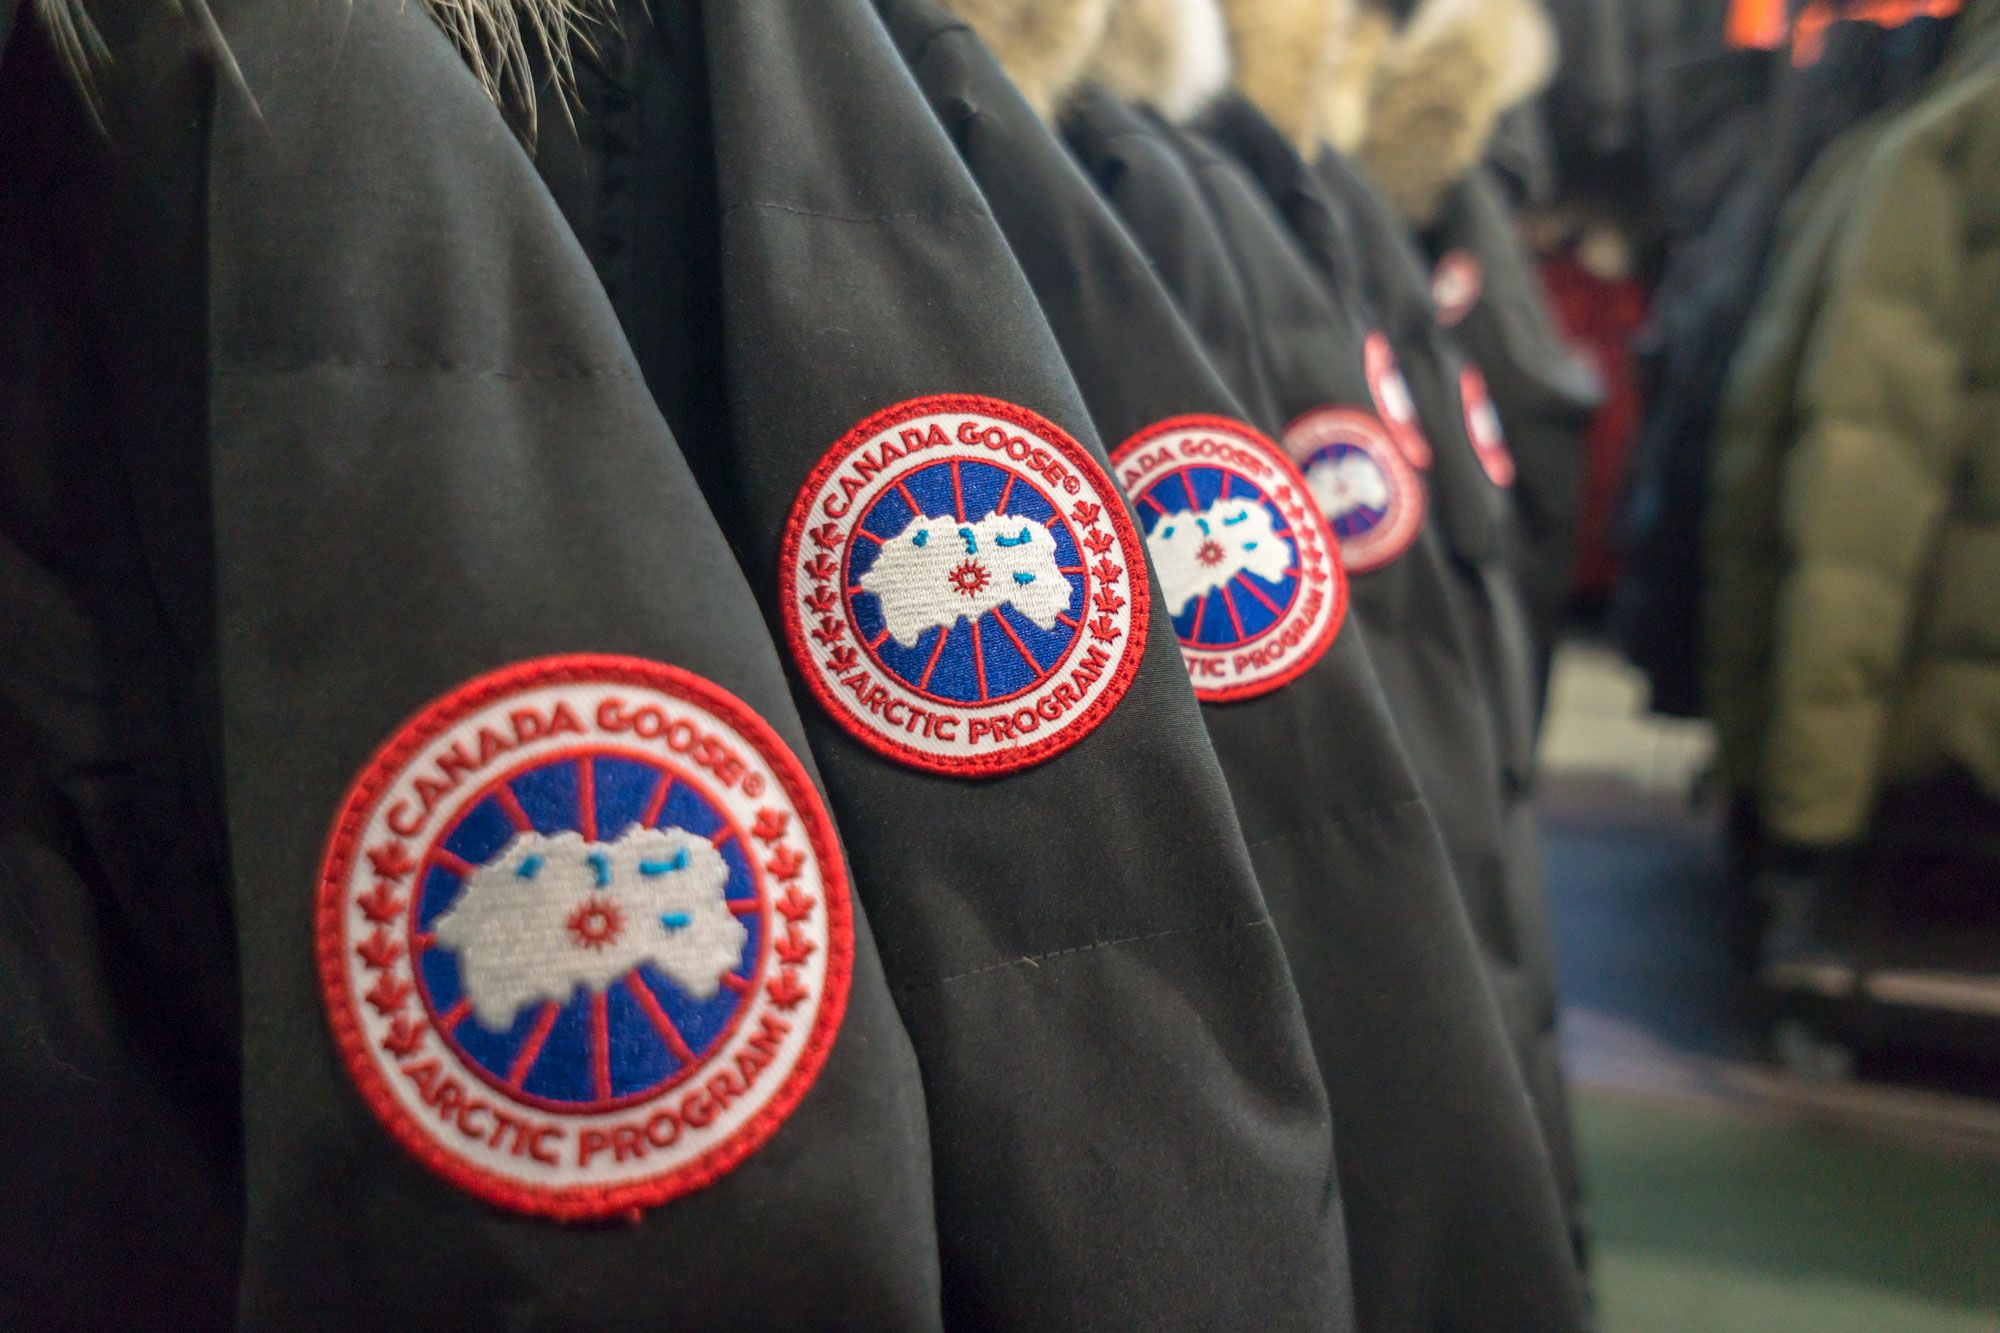 Stocks making the biggest moves midday: Canada Goose, Capri Holdings